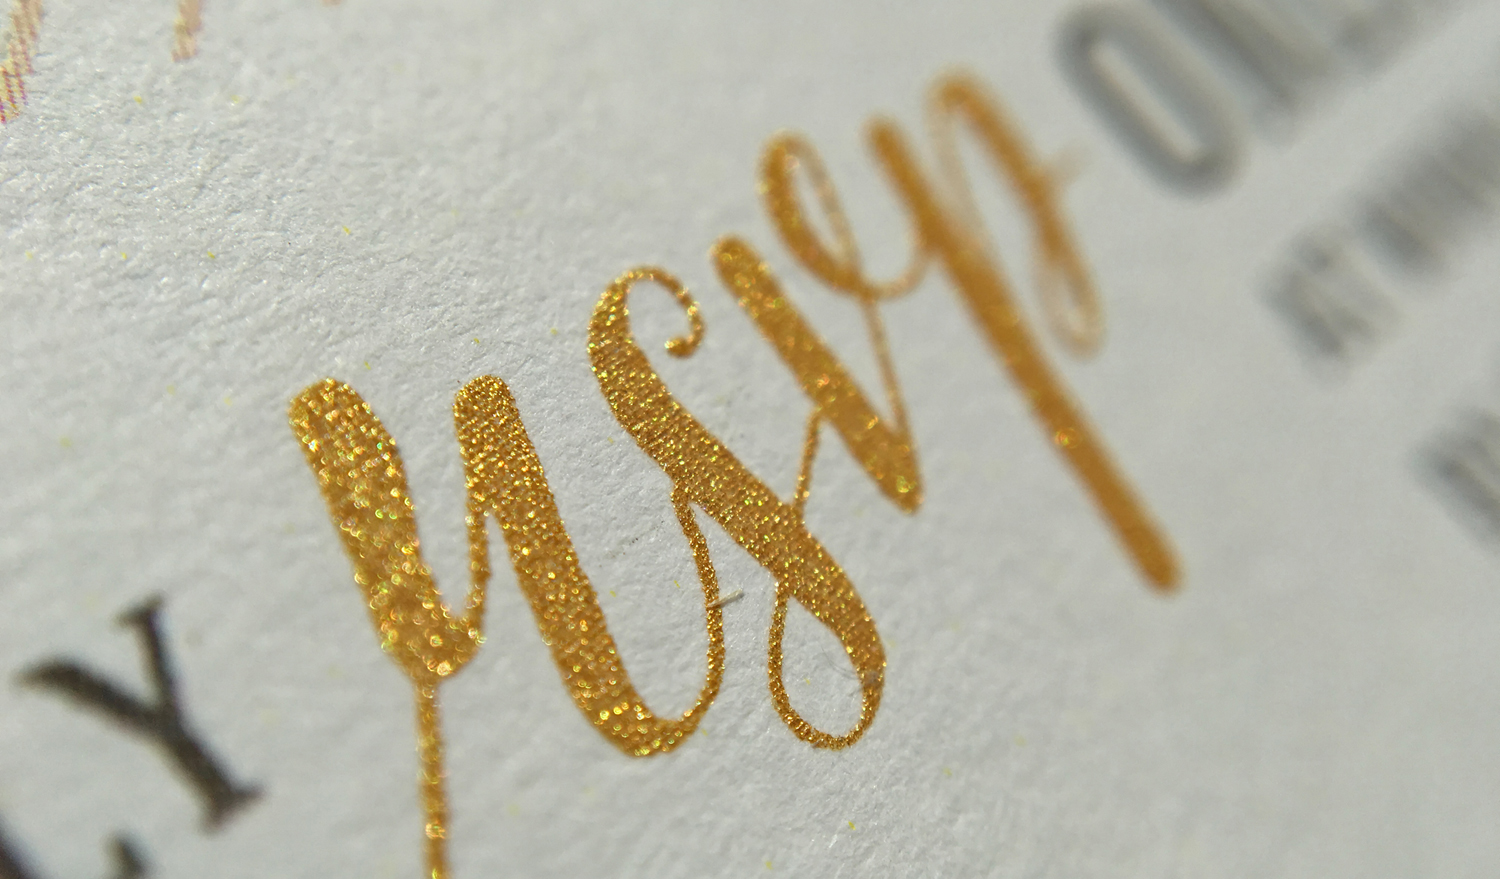 Close up of metallic gold screen printing ink